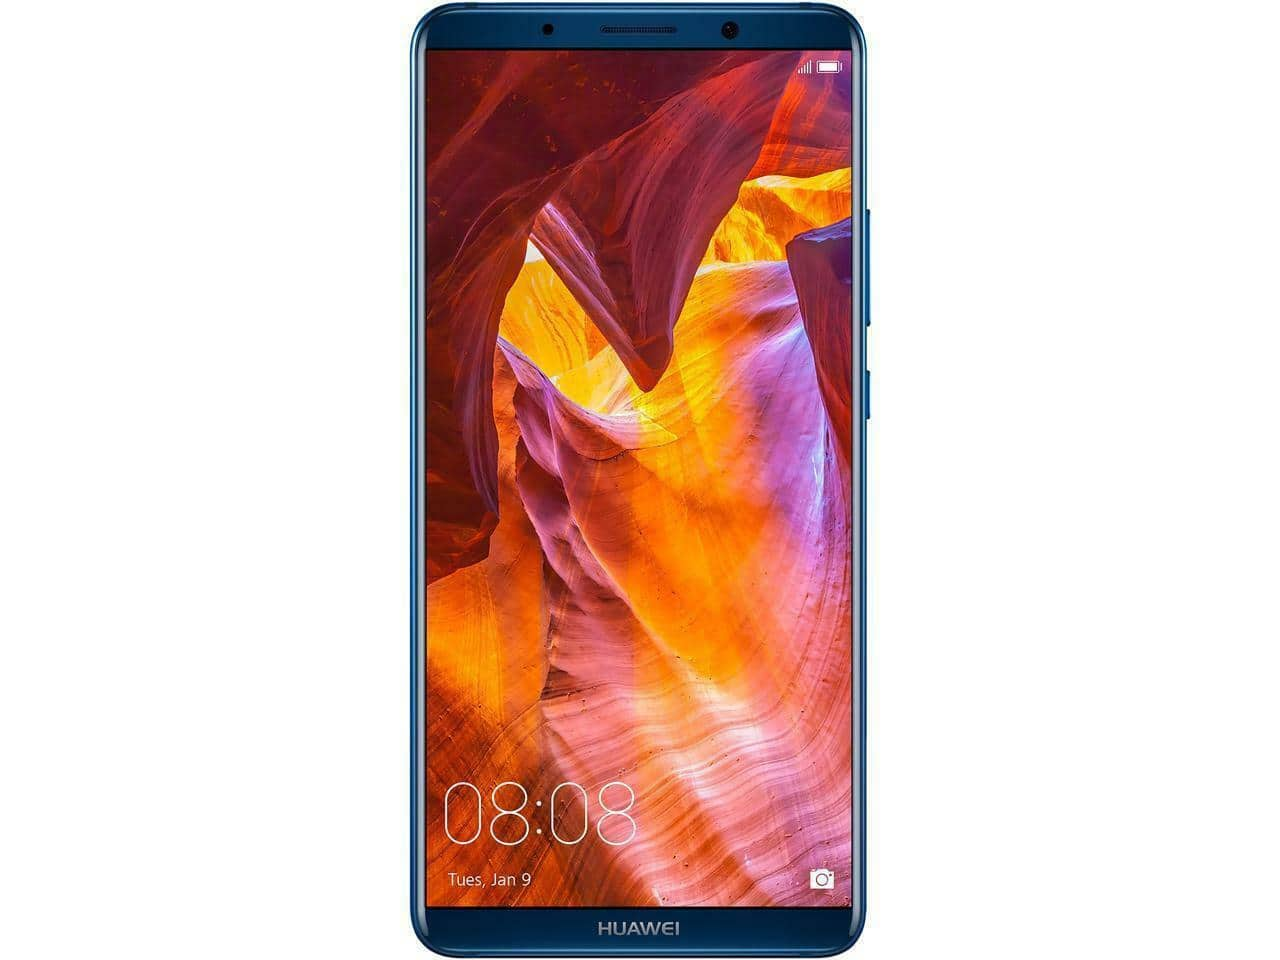 128GB Huawei Mate 10 Pro GSM Unlocked Smartphone - $335.99 + Free Shipping @ Newegg via eBay